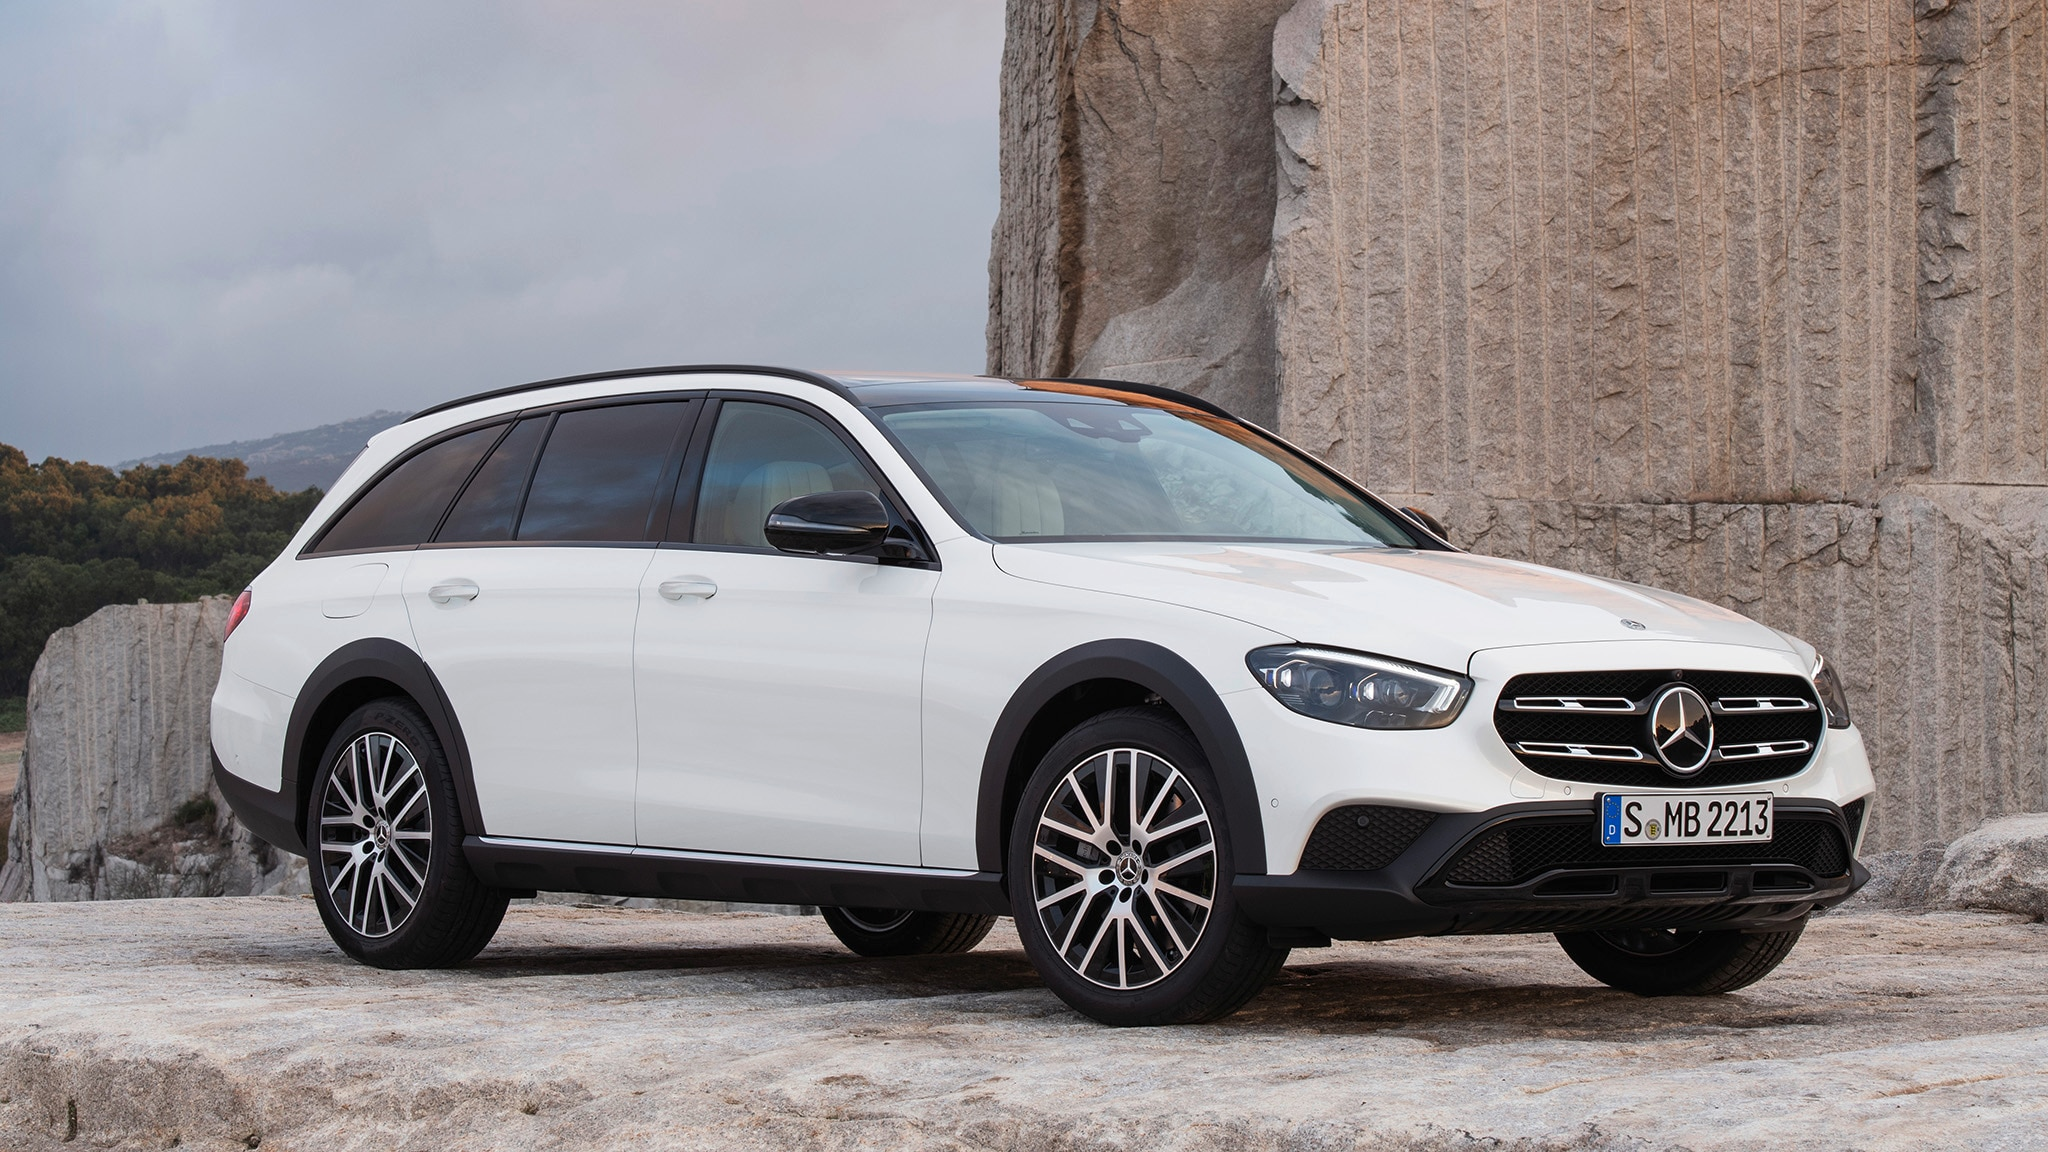 2021 Mercedes Benz E Class All Terrain Elevates State Of Station Wagon Art Literally